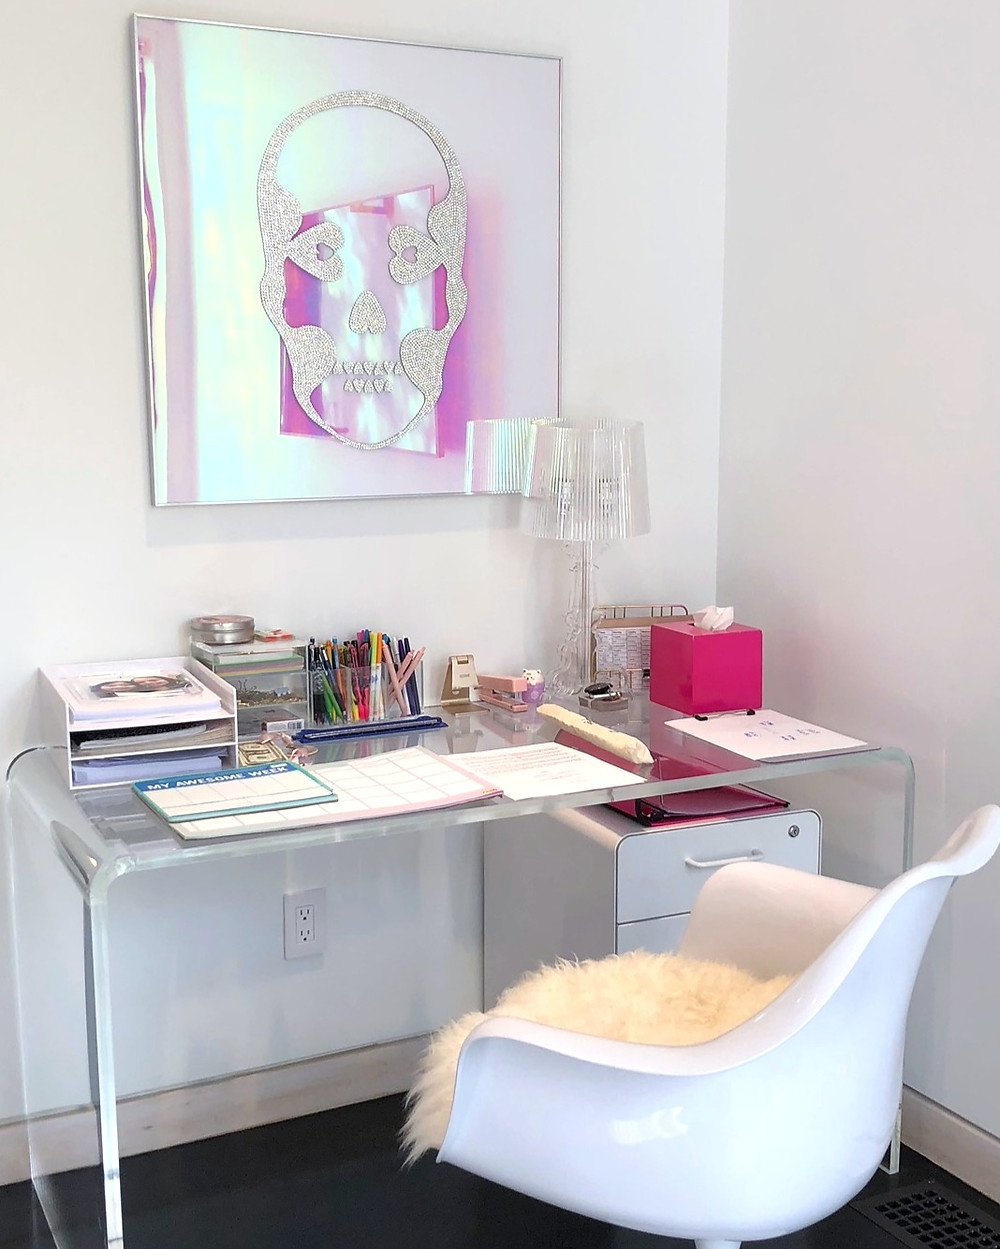 organized desk and workspace